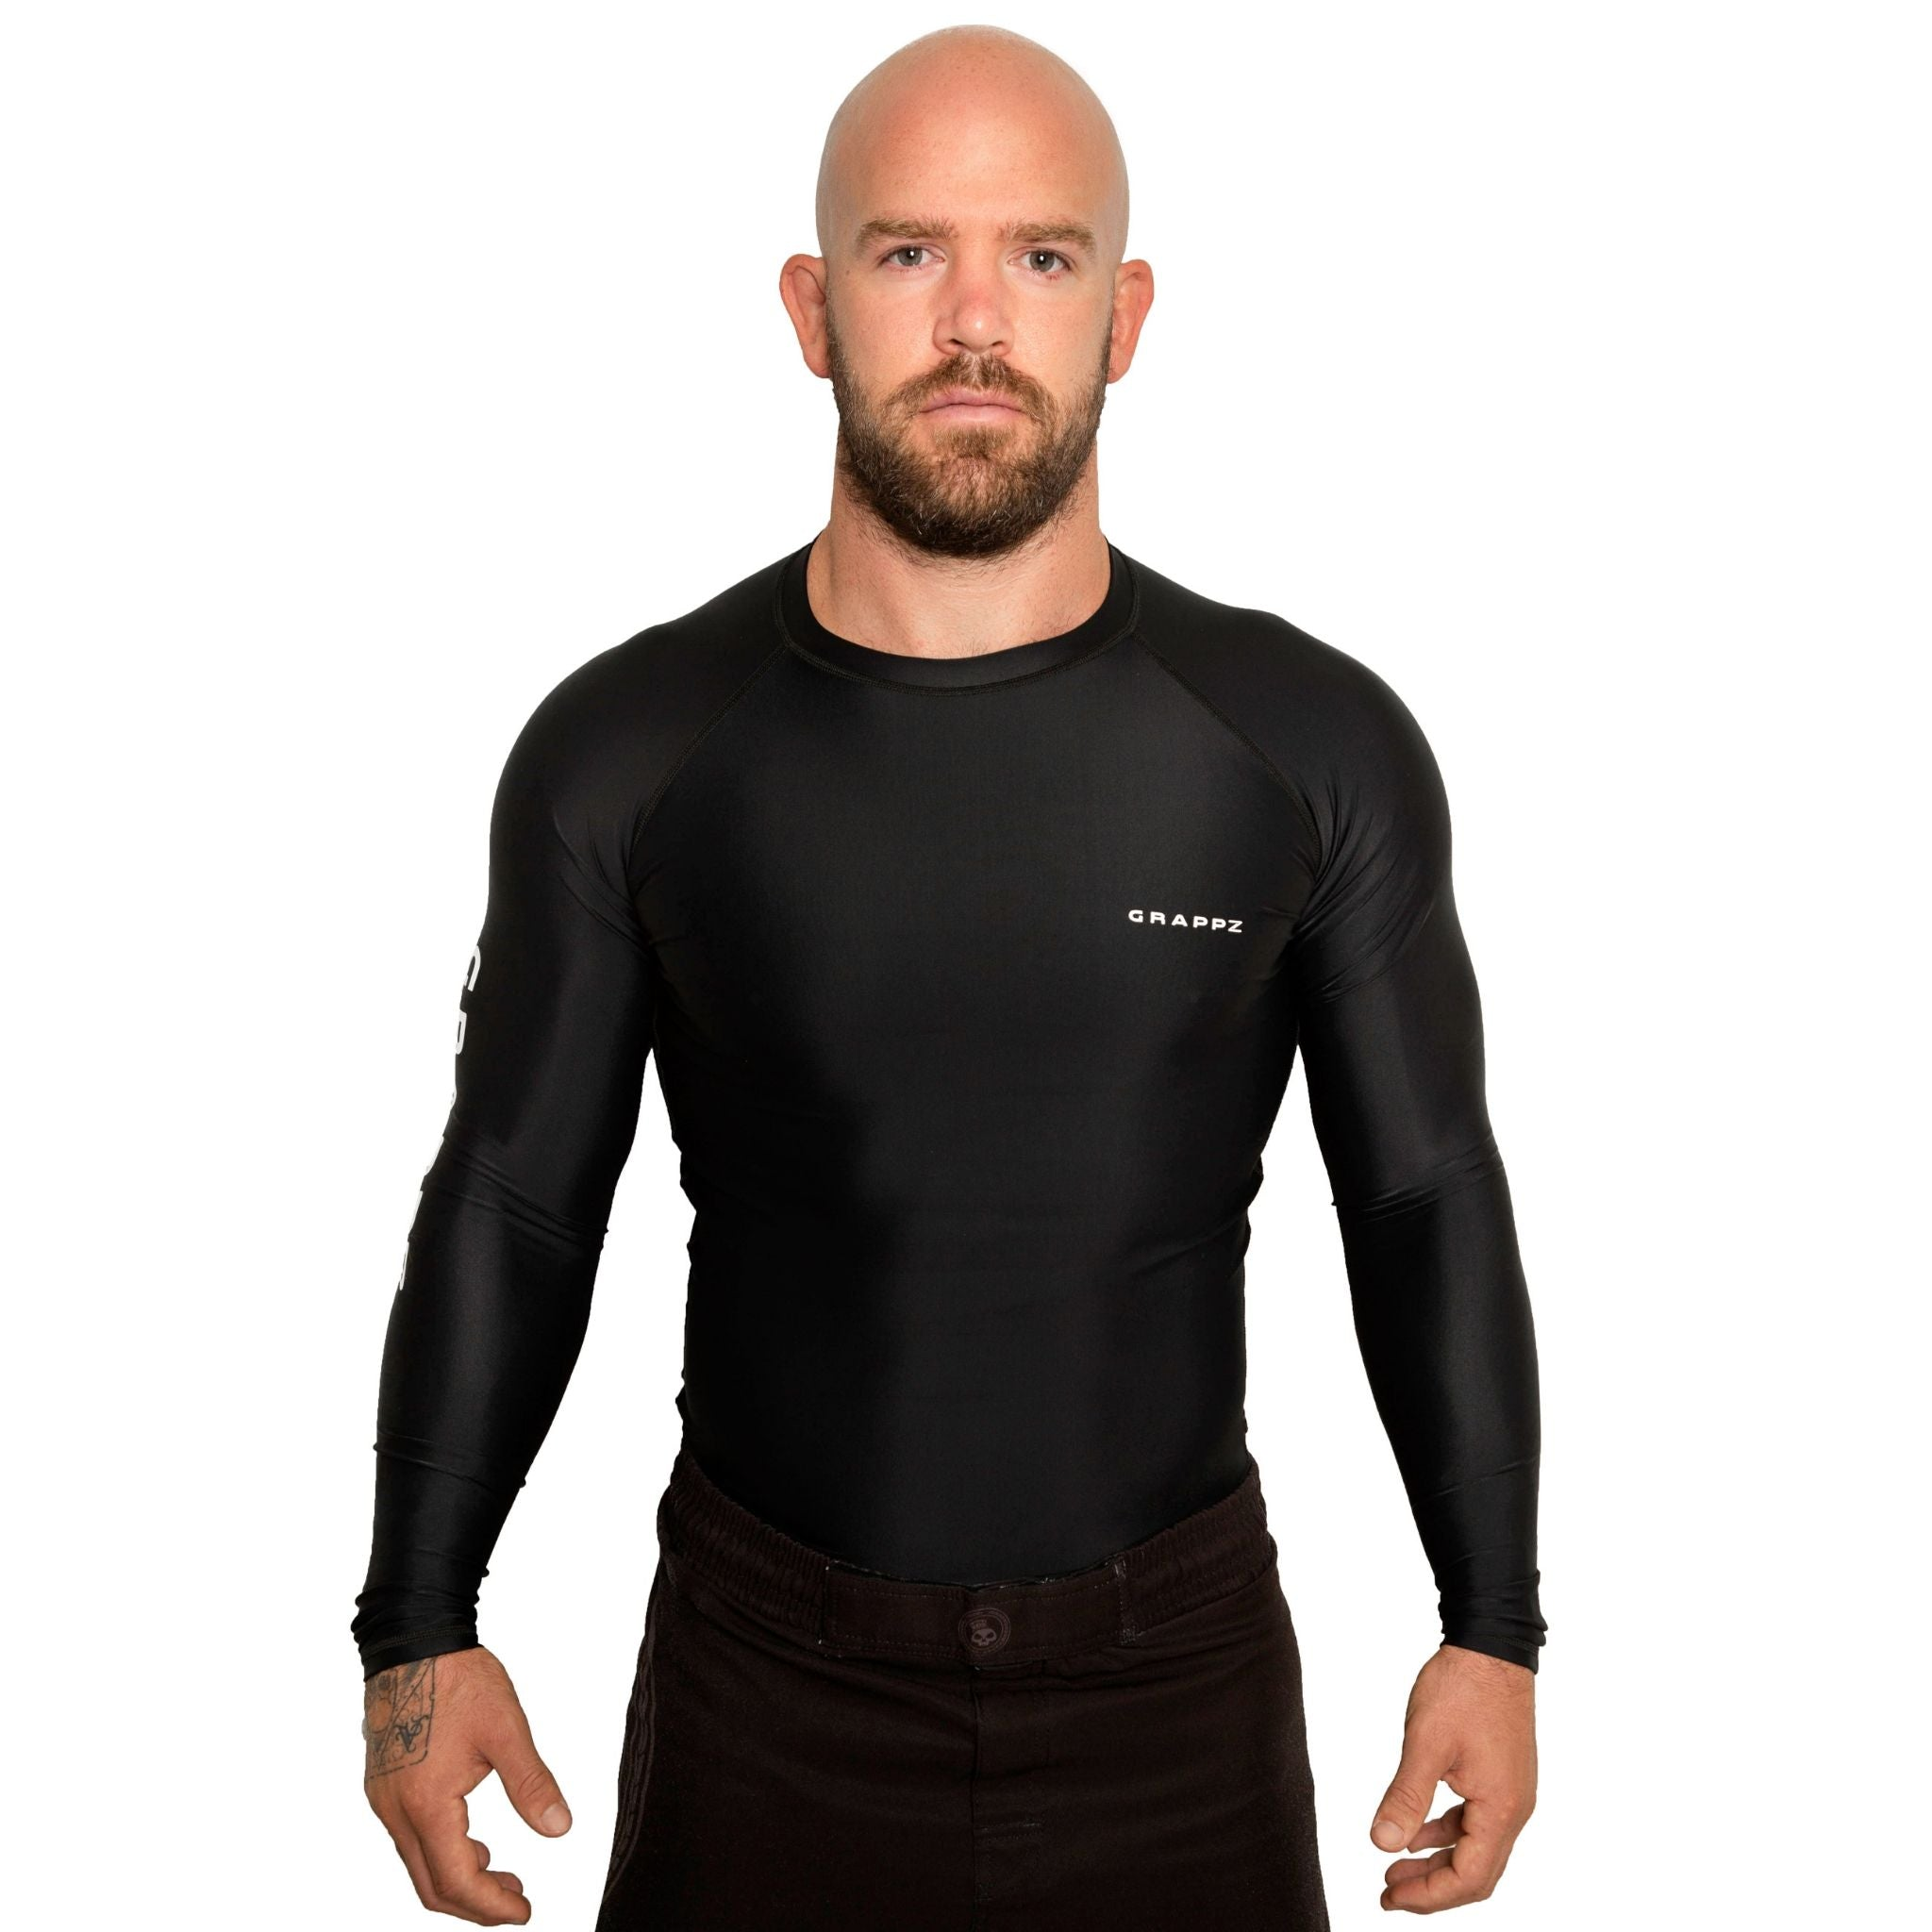 Grappz Long sleeve Rashguard - Athletic Shirt - Base layer